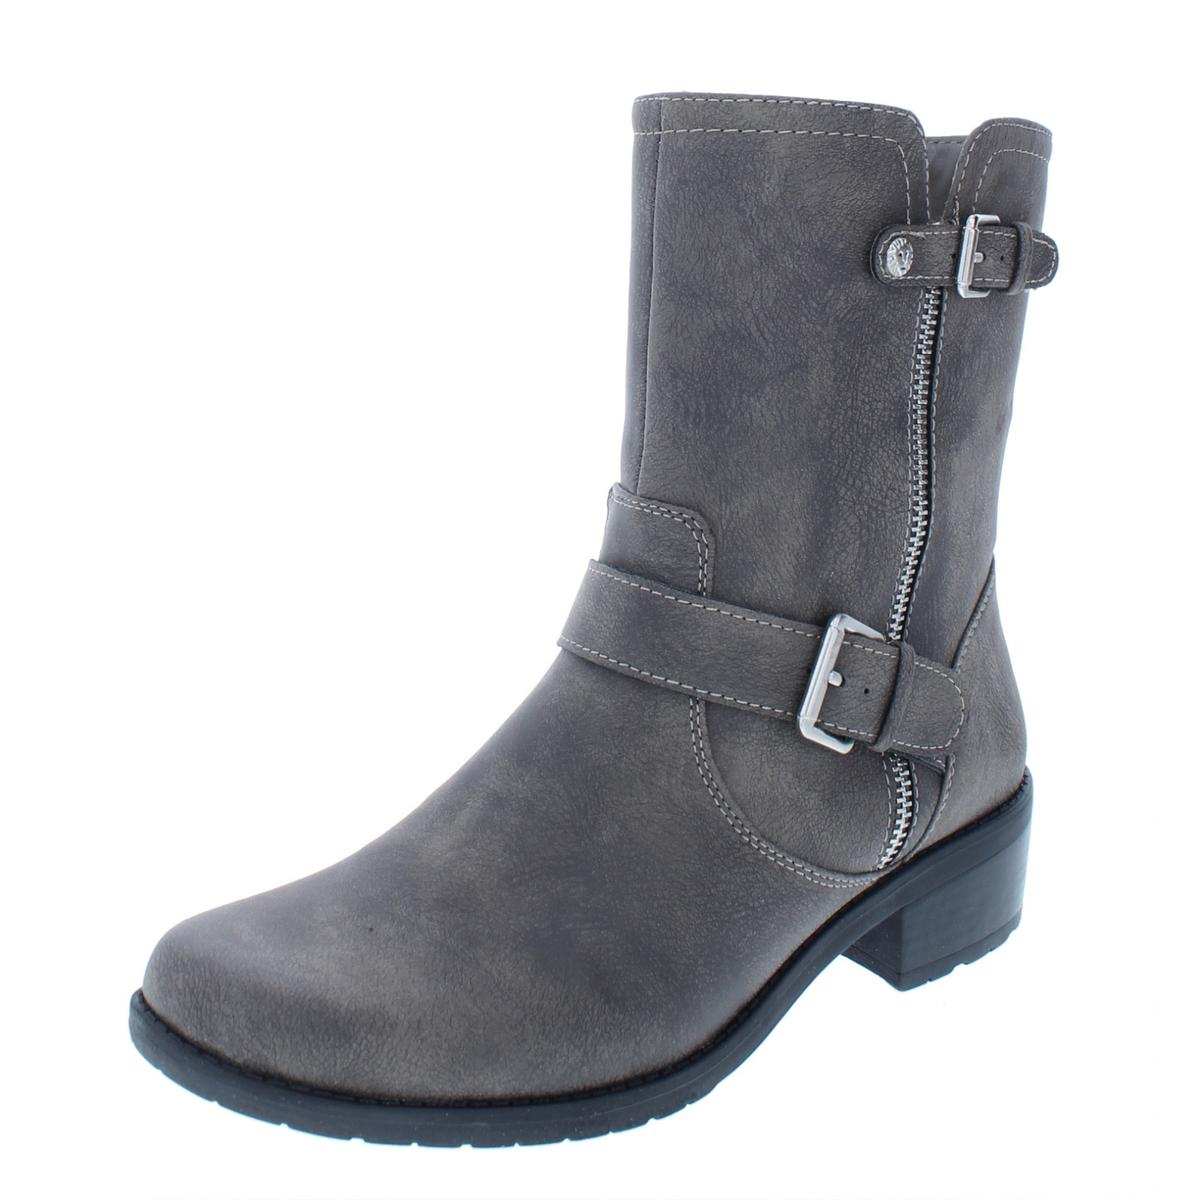 wholesale online sells for whole family Details about Anne Klein Womens Leeder Taupe Heels Ankle Boots Shoes 9  Medium (B,M) BHFO 3432